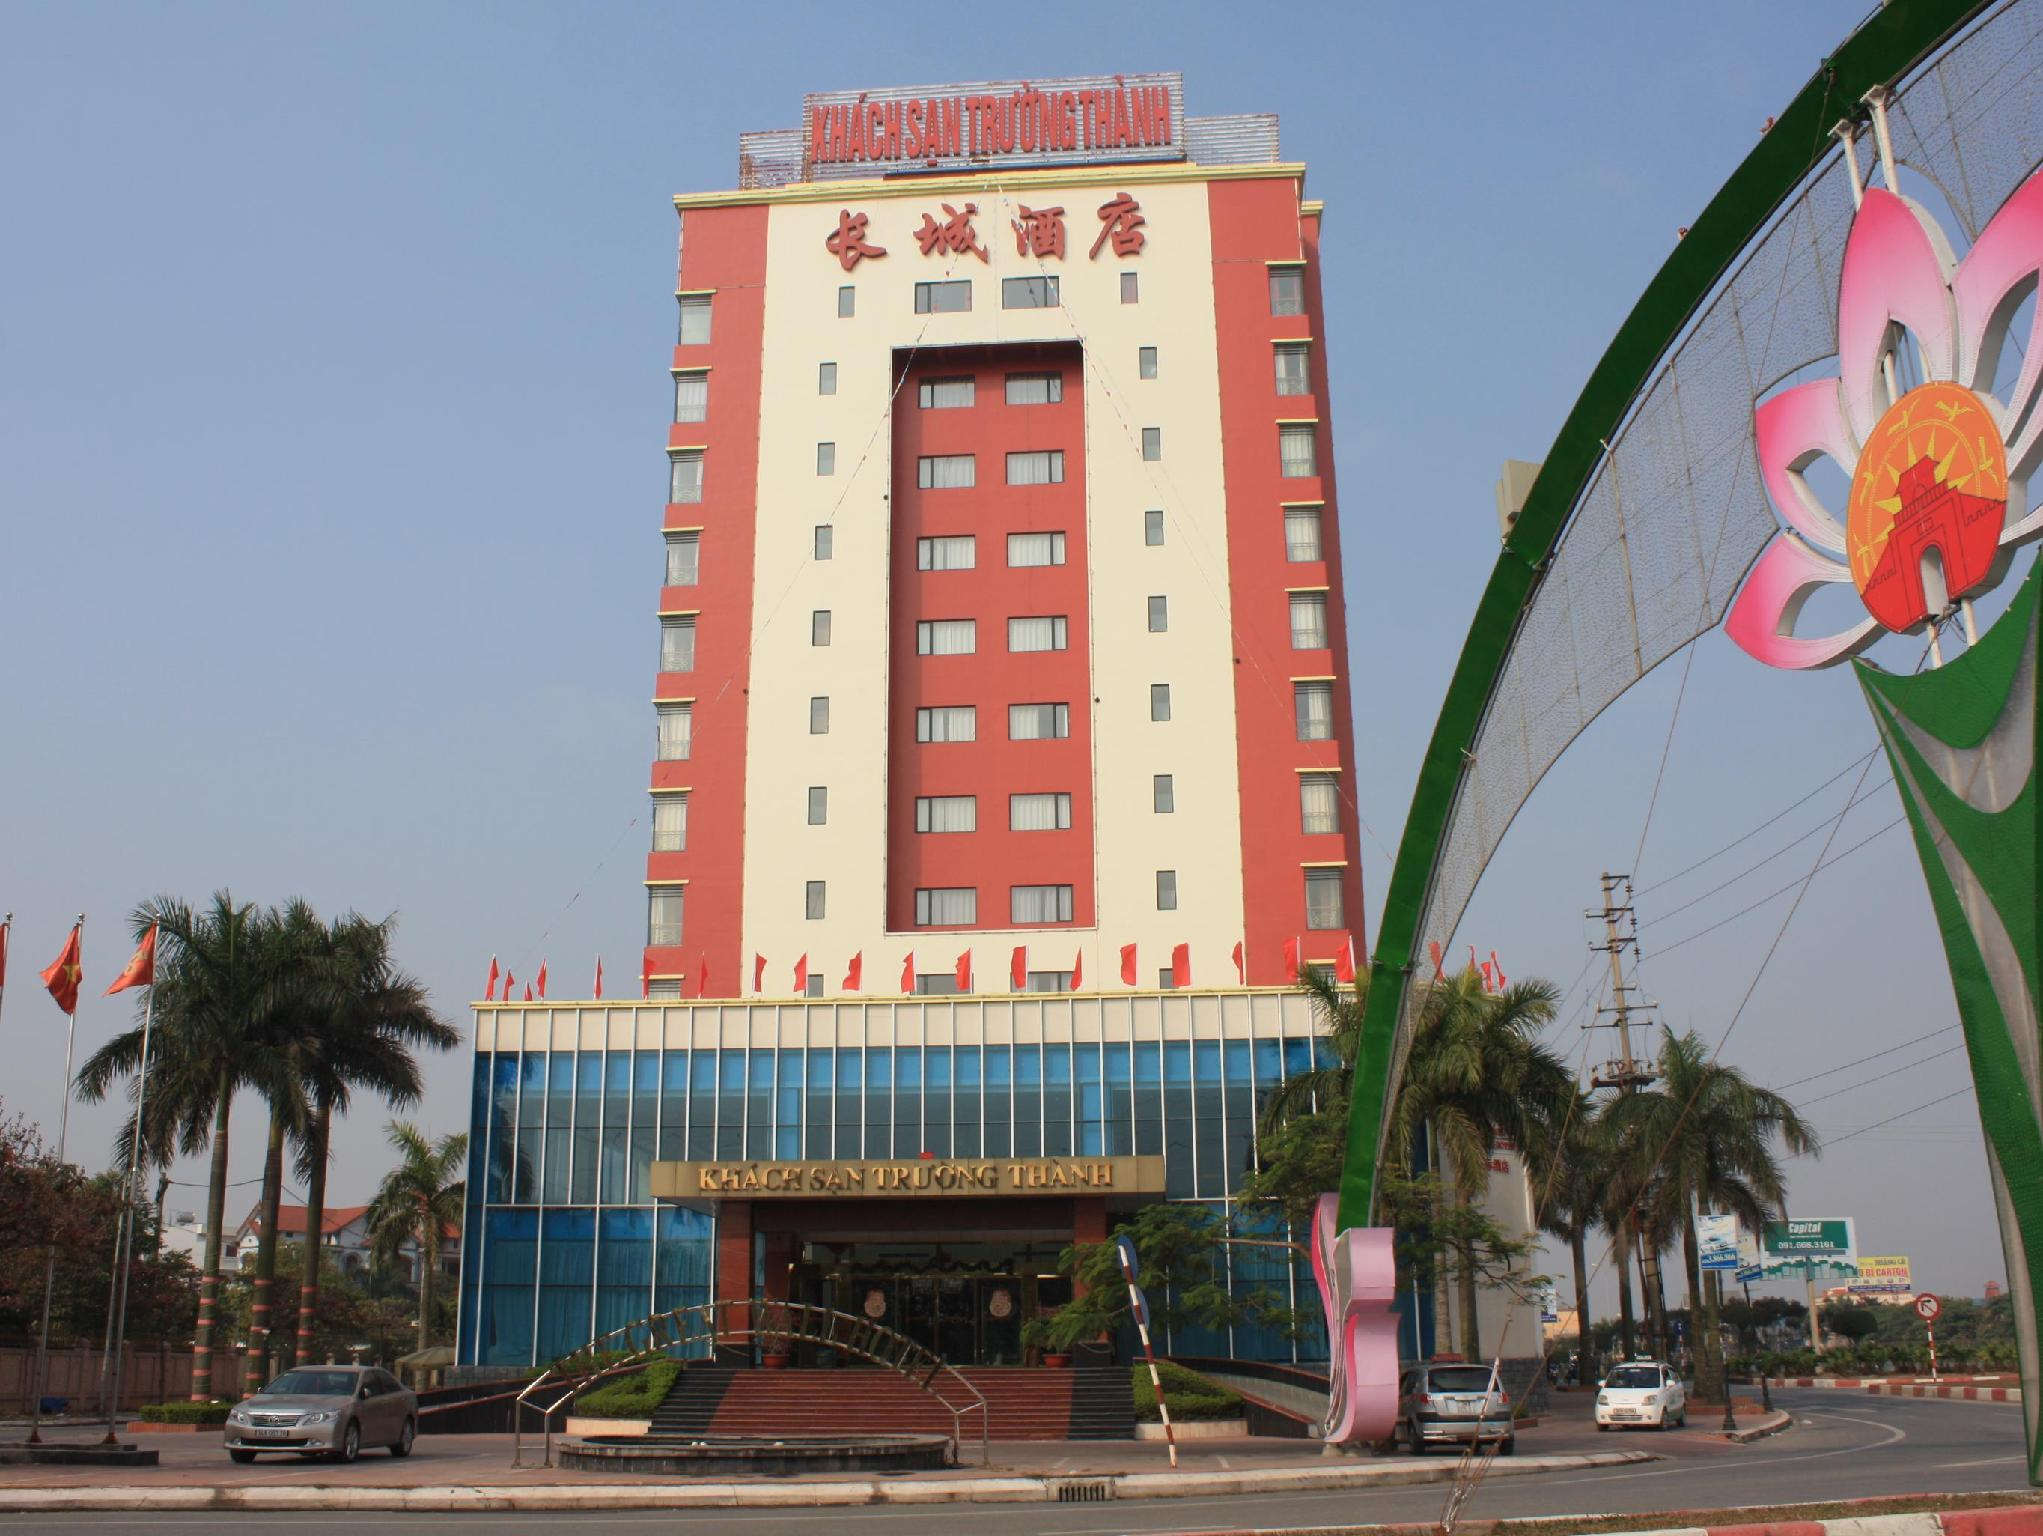 The Great Wall International Hotel, Hải Dương